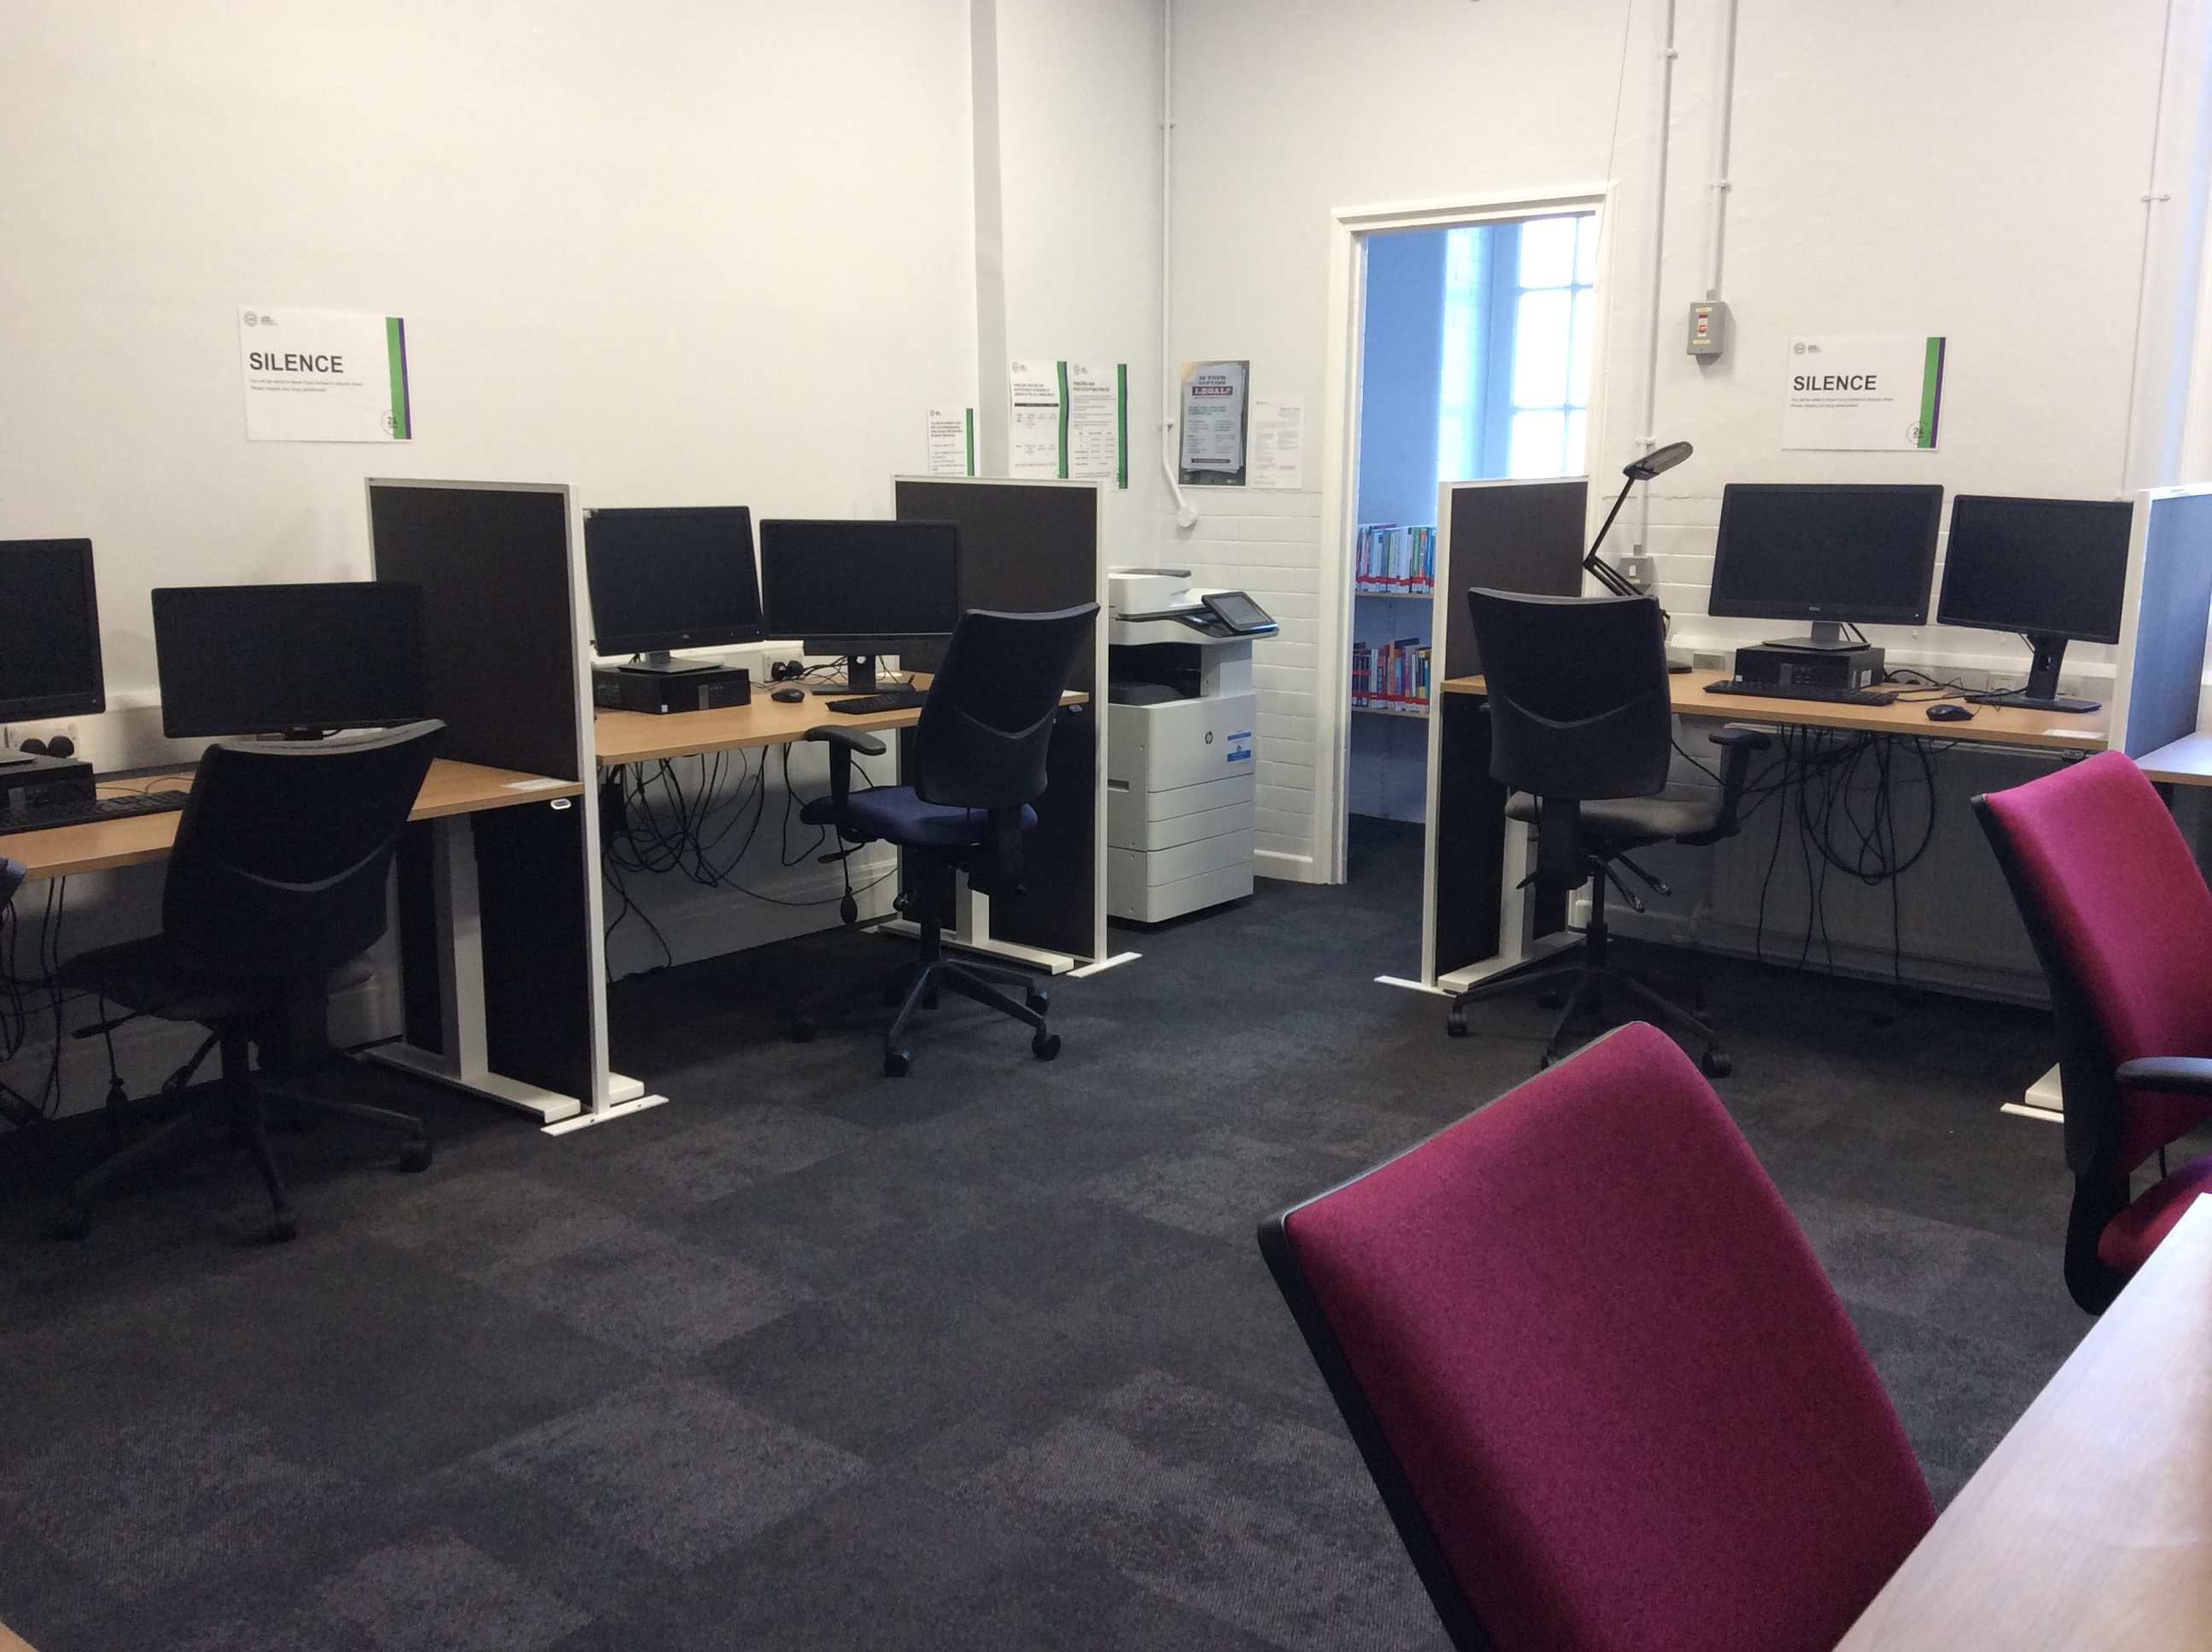 The Disability Resource Area at Headingley Library has a calm, minimalist and modern feel. Inside are several computers separated by desk dividers.